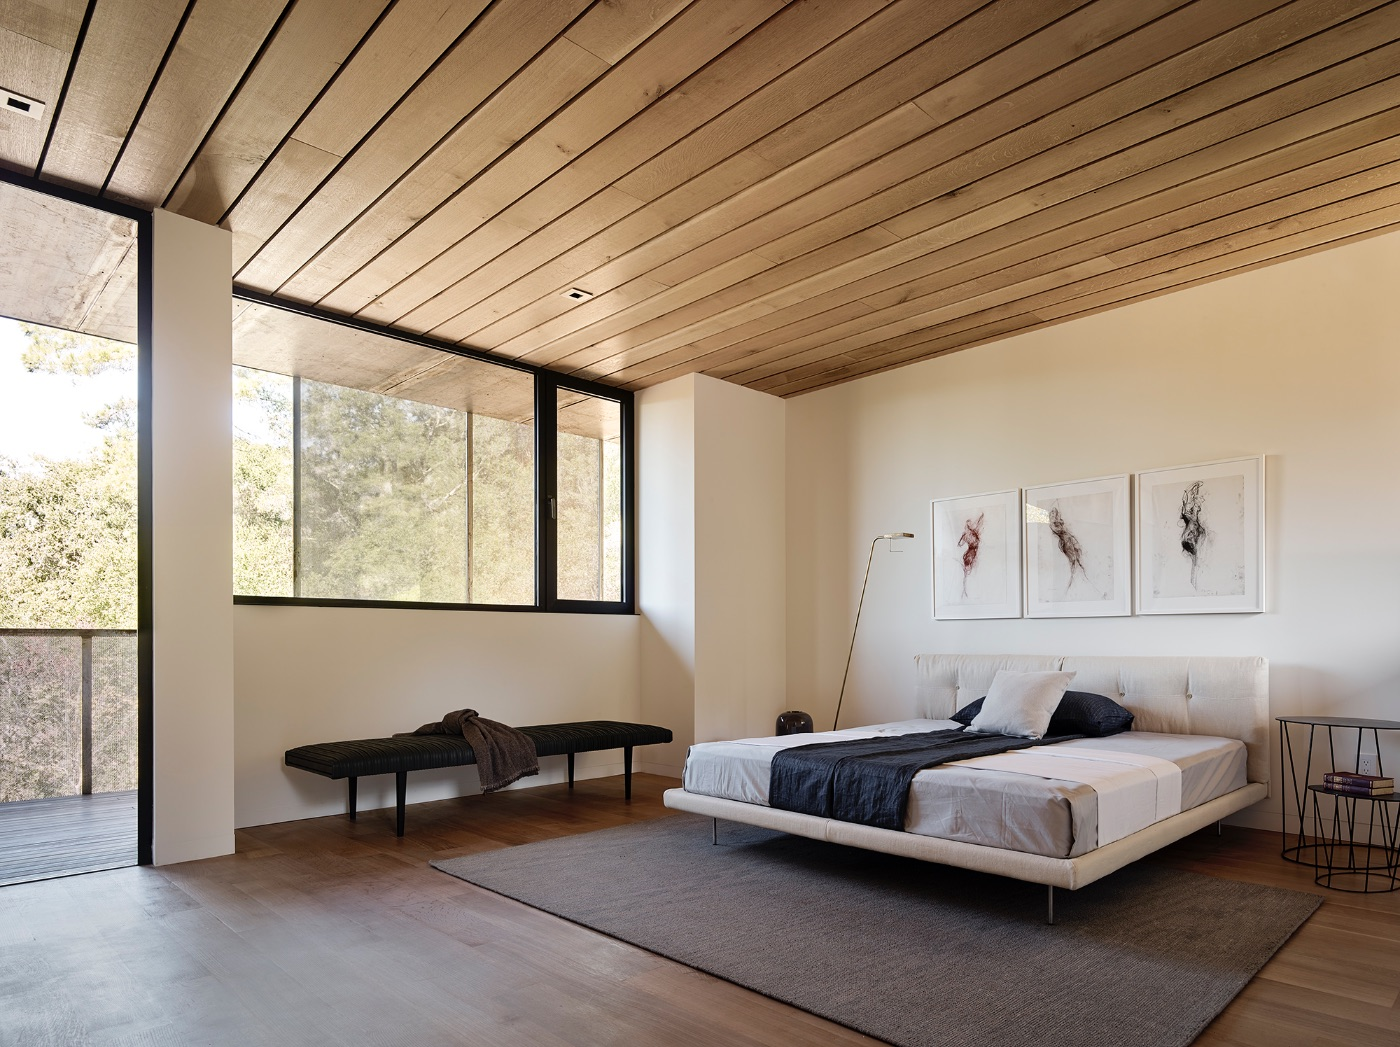 12_Miner Road House_Faulkner Architects_Inspirationist